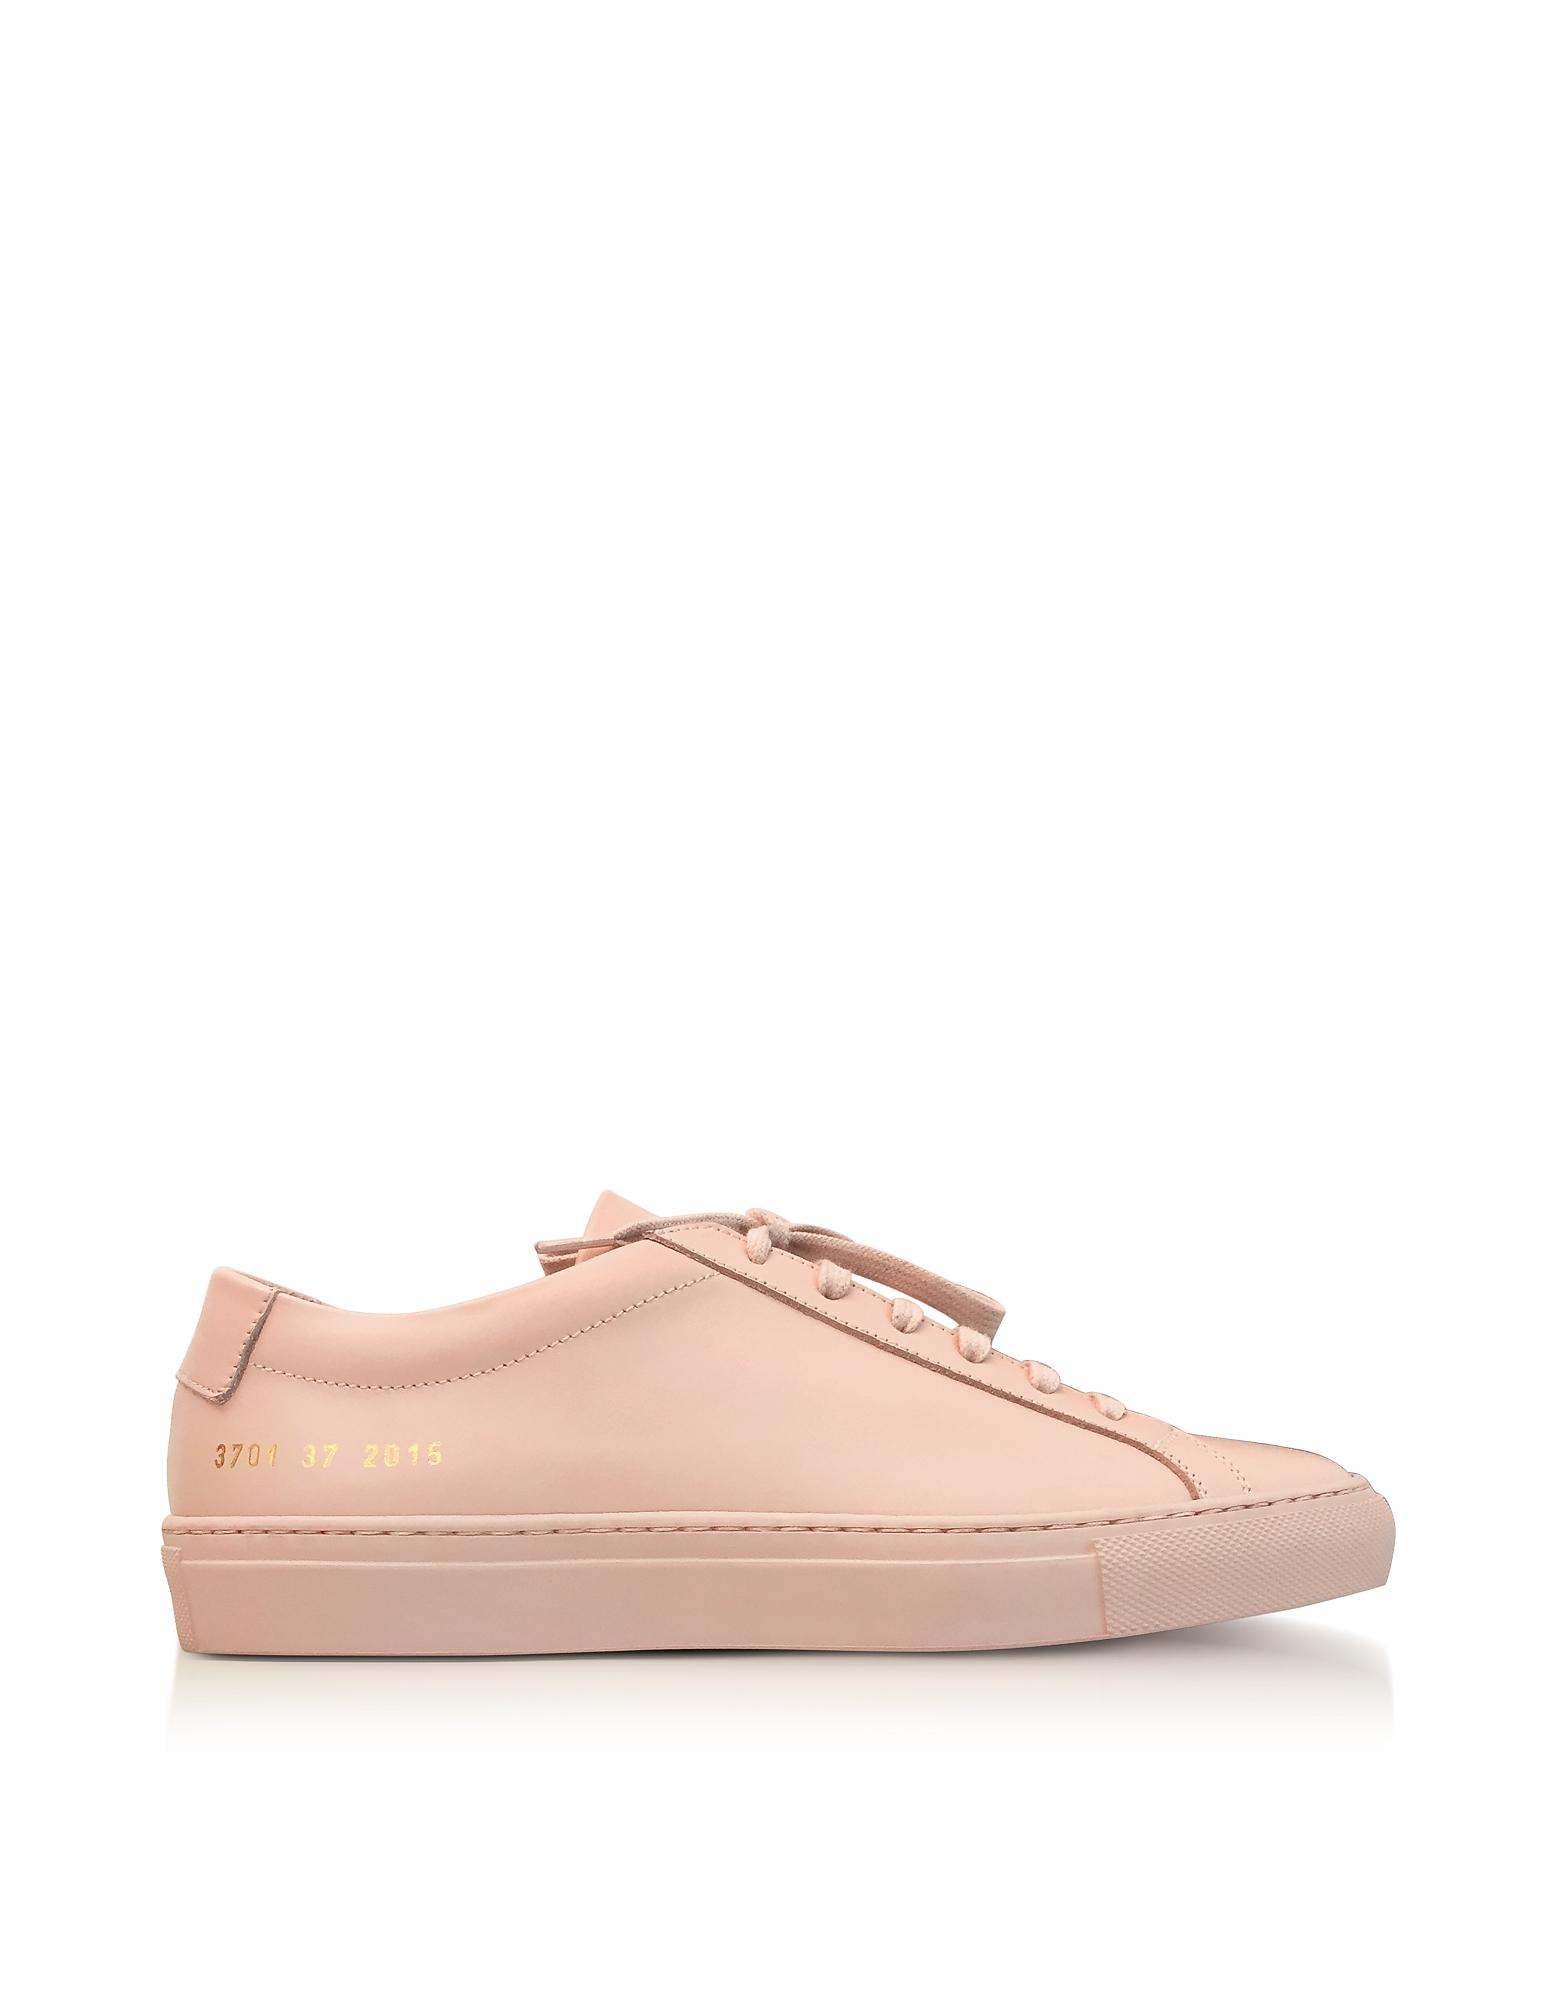 223fcedbe6f7 Common Projects. Pink Blush Leather Achilles Original Low Top Women s  Trainers